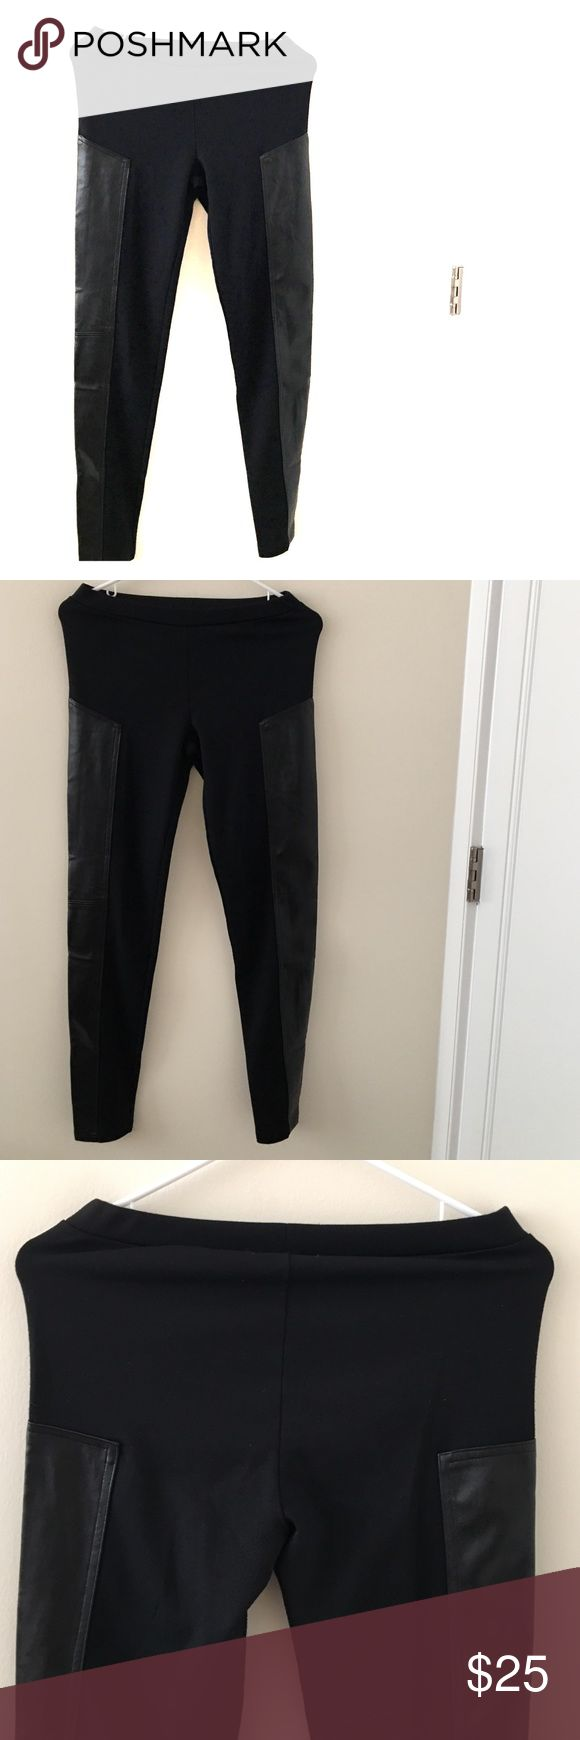 """Trouvé Faux Leather Panel Leggings Black size M Worn Faux-leather panels in a tonally matched shade coolly detail the outer legs of sleek leggings shaped from a dense ponte knit. Elastic waist. Polyester/rayon/spandex; machine wash. Approx. inseam: 30"""". Any questions please ask smoke free home Trouve' Pants Leggings"""